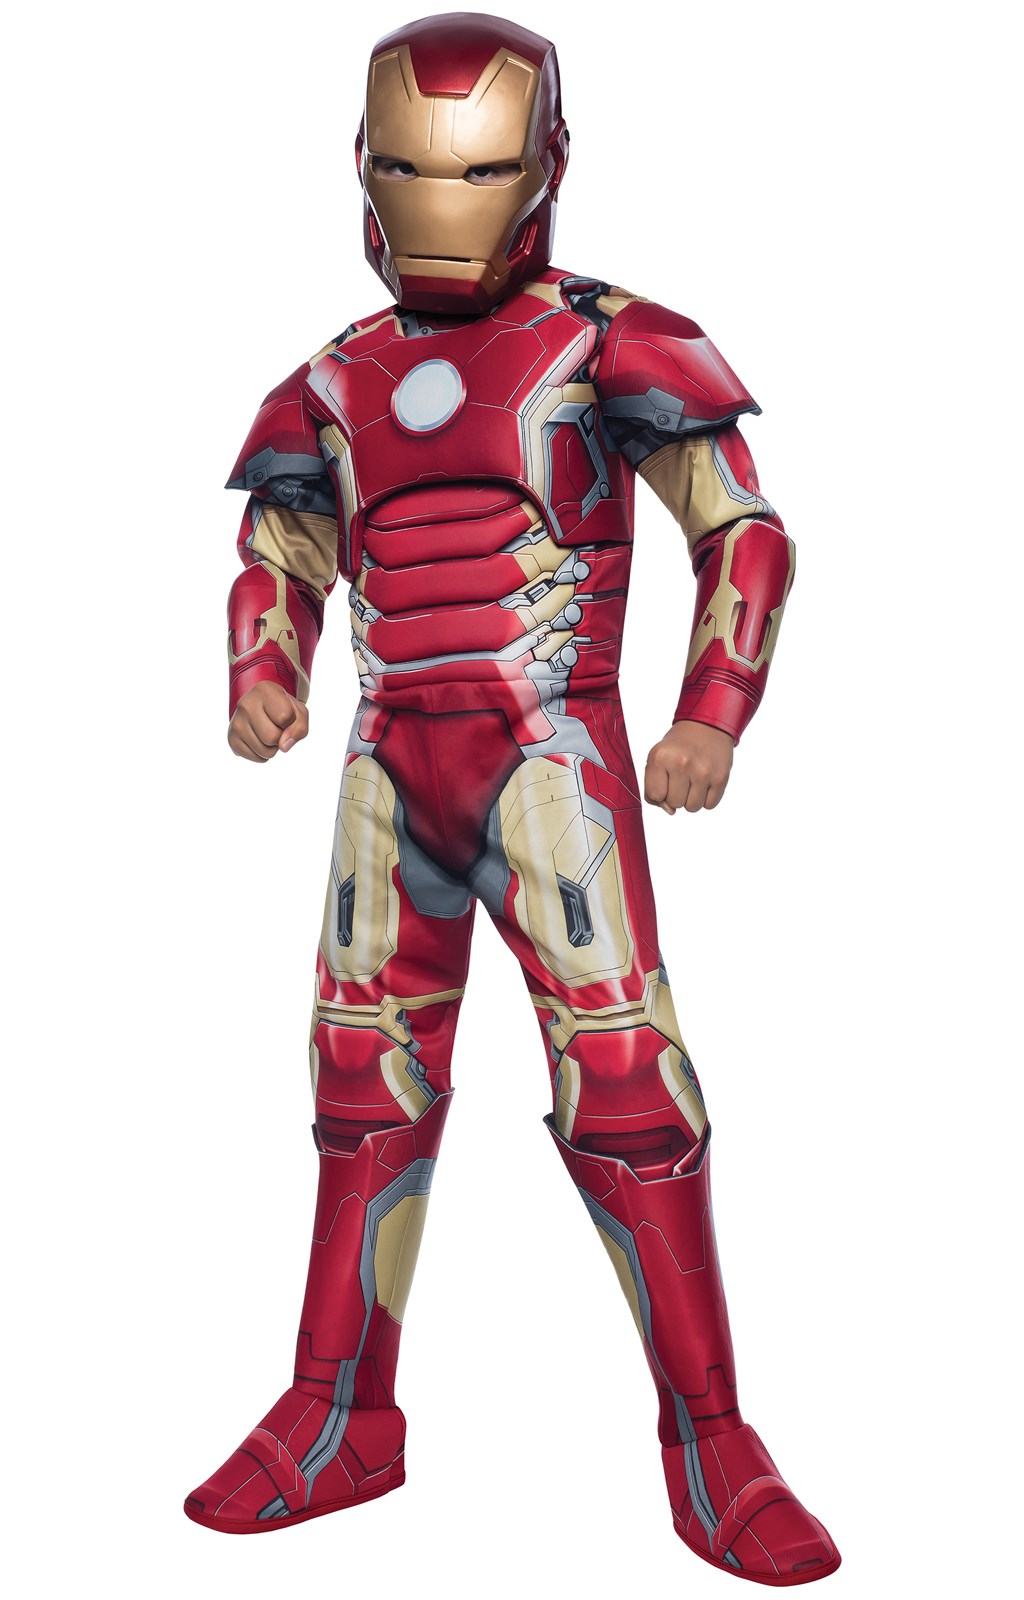 Avengers 2: Age of Ultron Deluxe Iron Man Mark 43 Costume ...